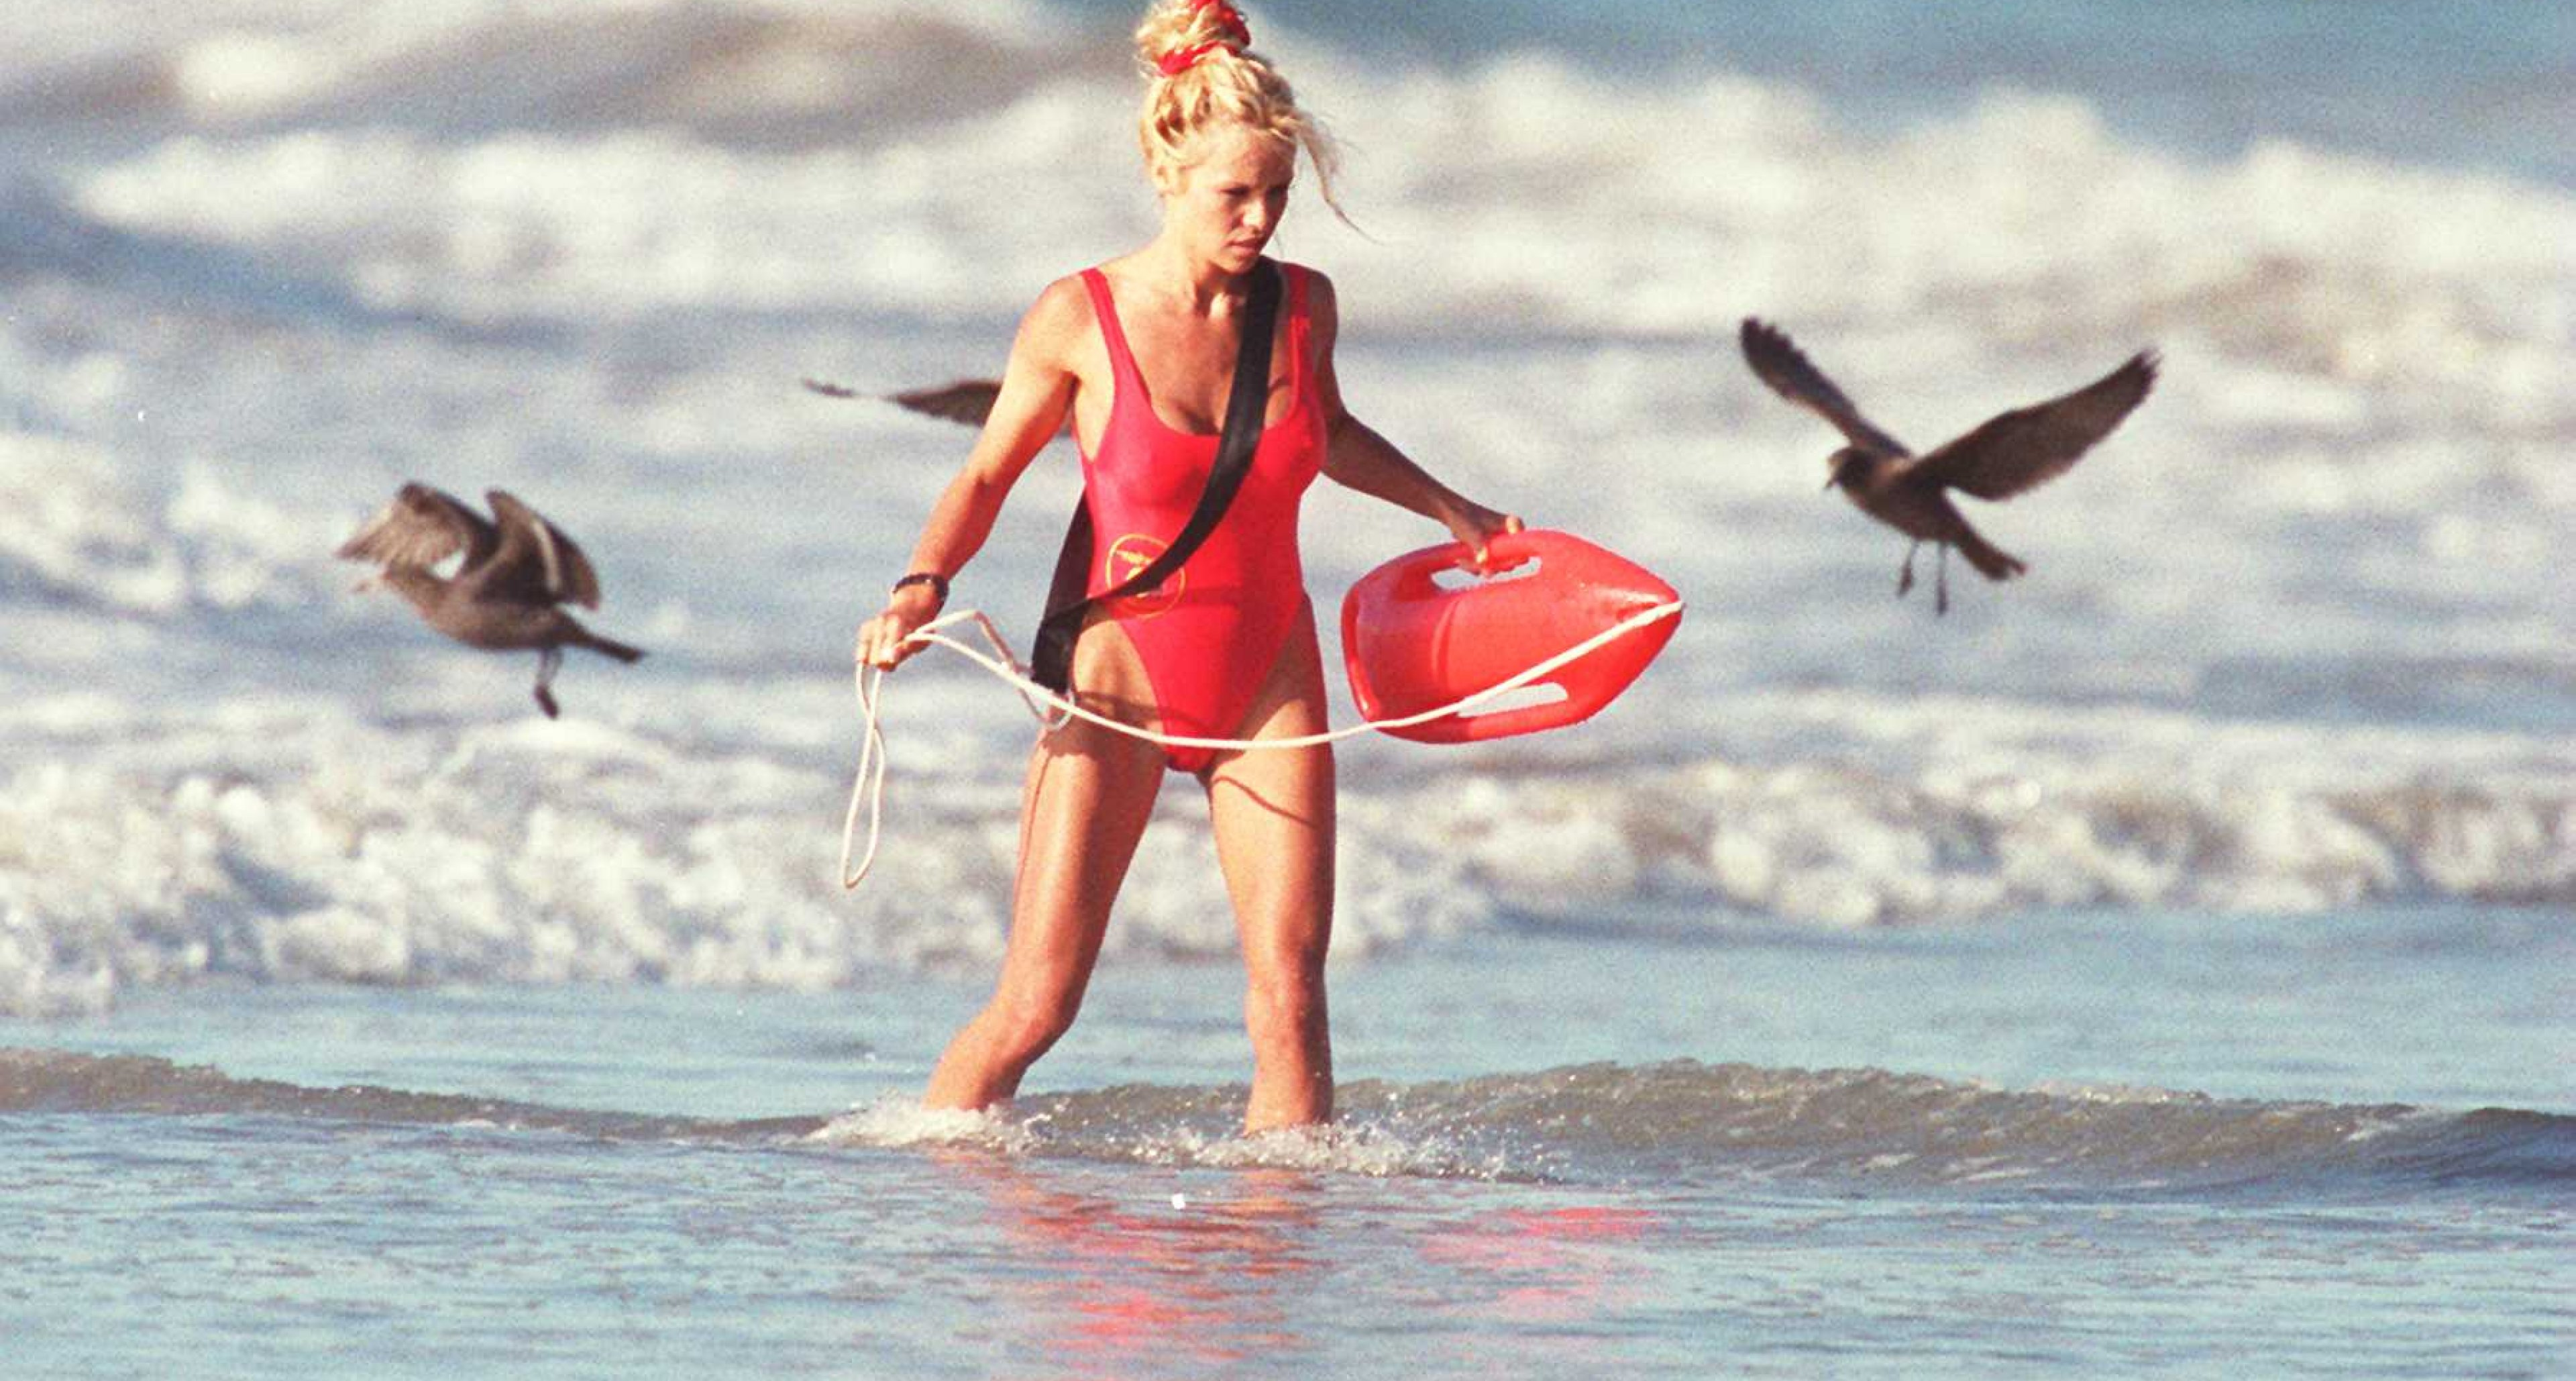 Pamela Anderson at the set of 'Baywatch' in Malibu Beach, 1995.